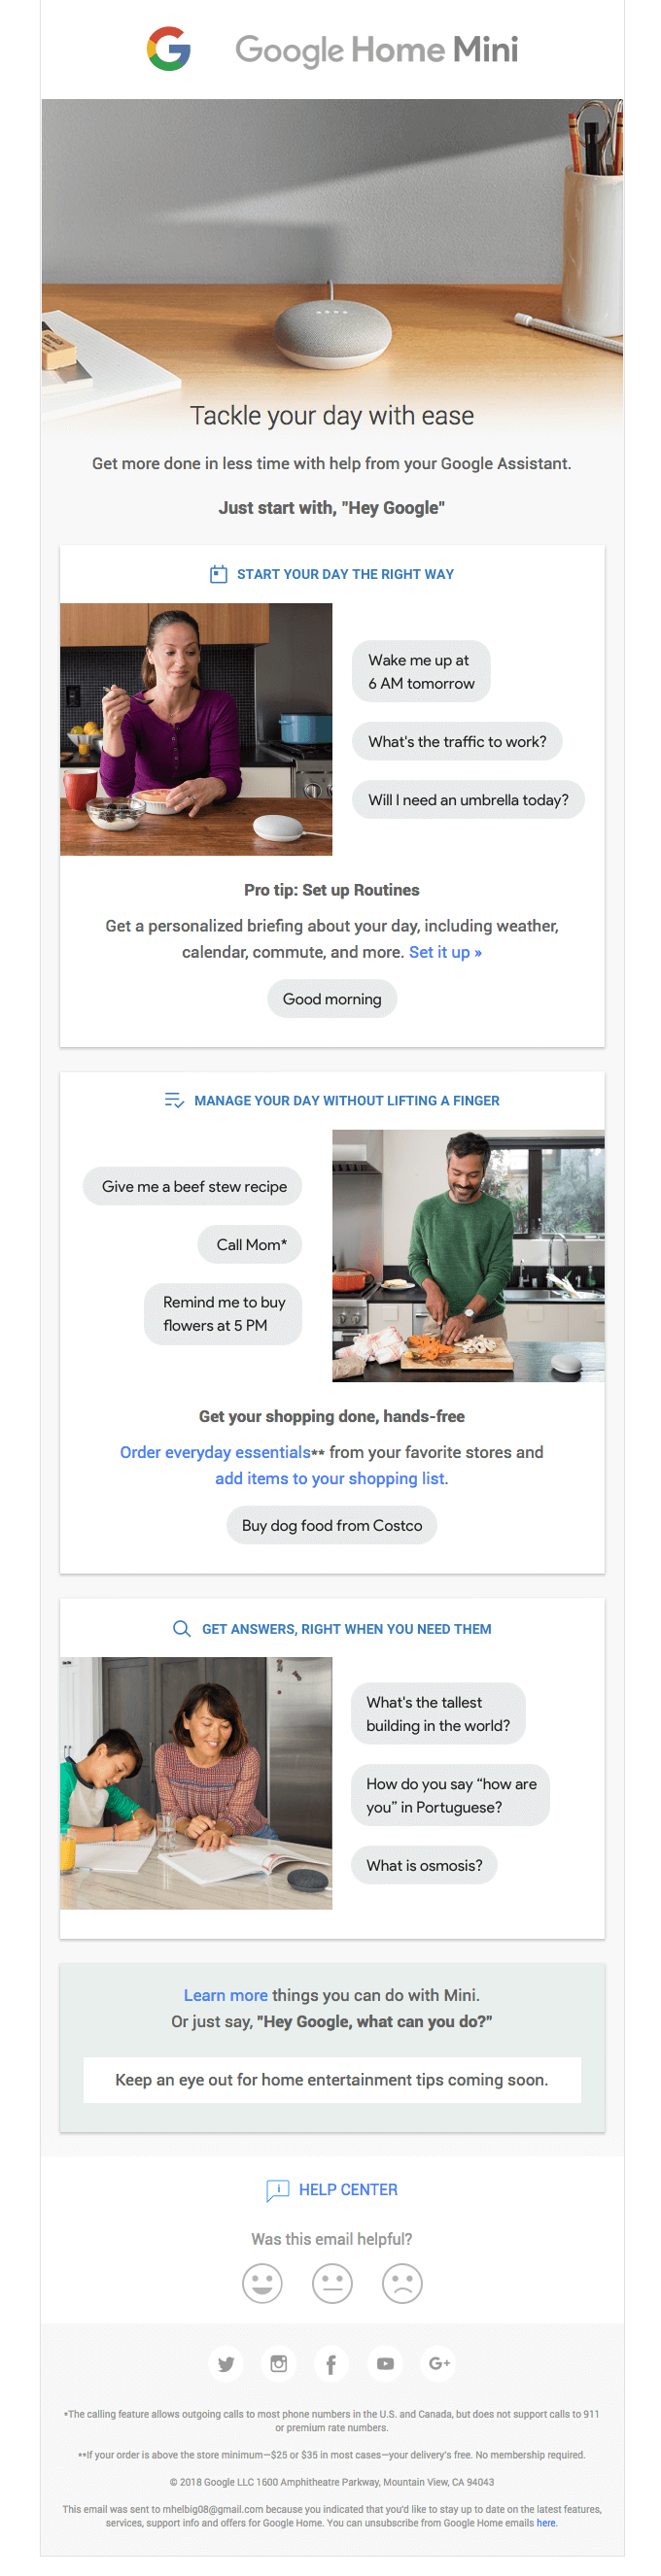 Google - Post-purchase email